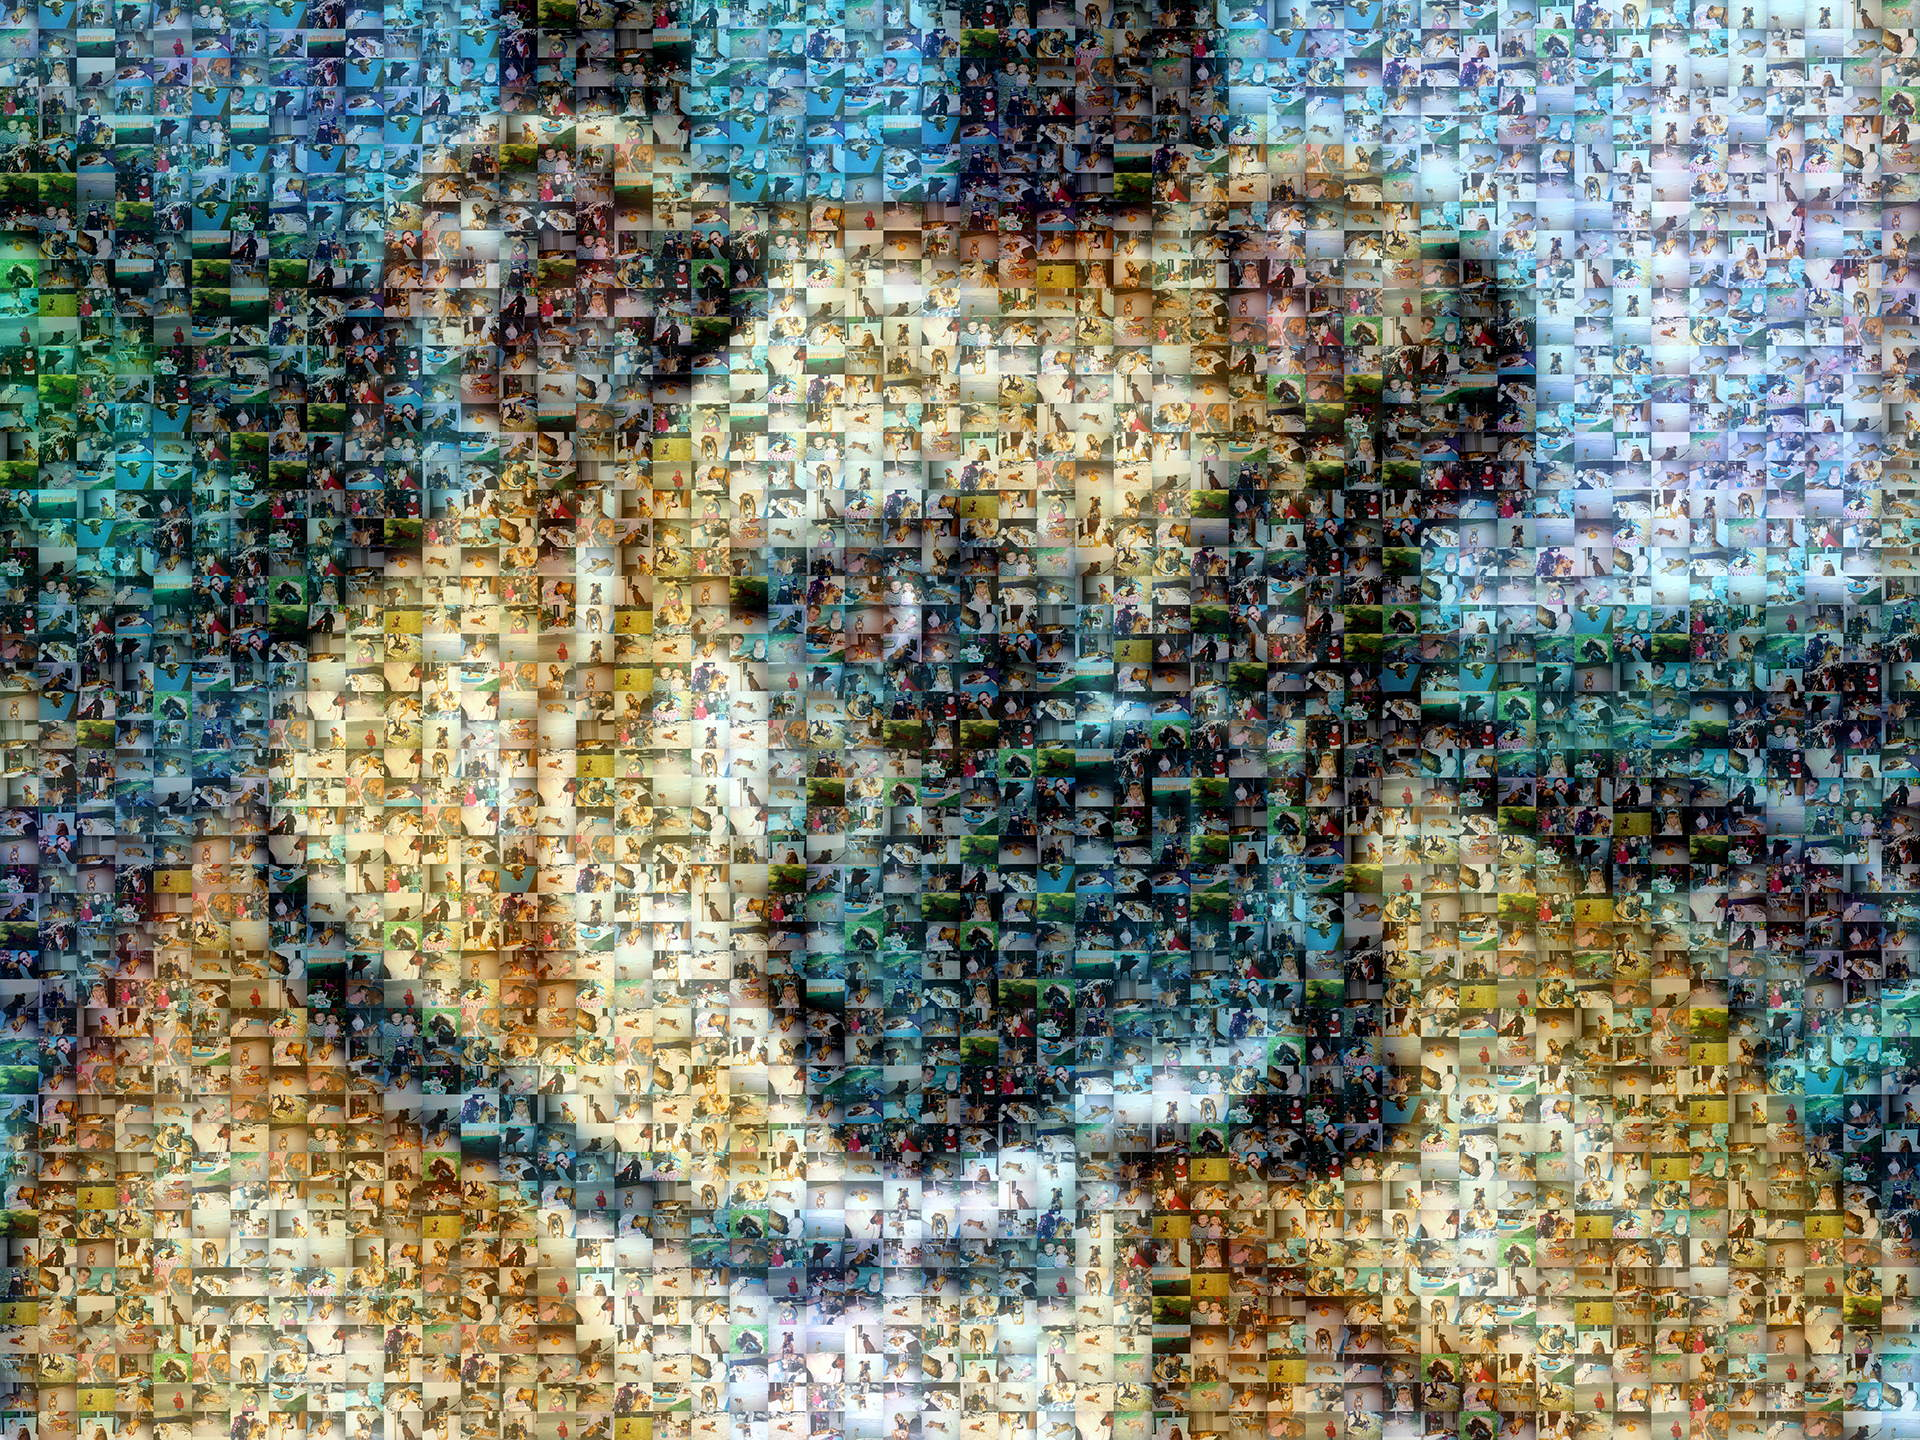 photo mosaic created using only 87 customer selected photos